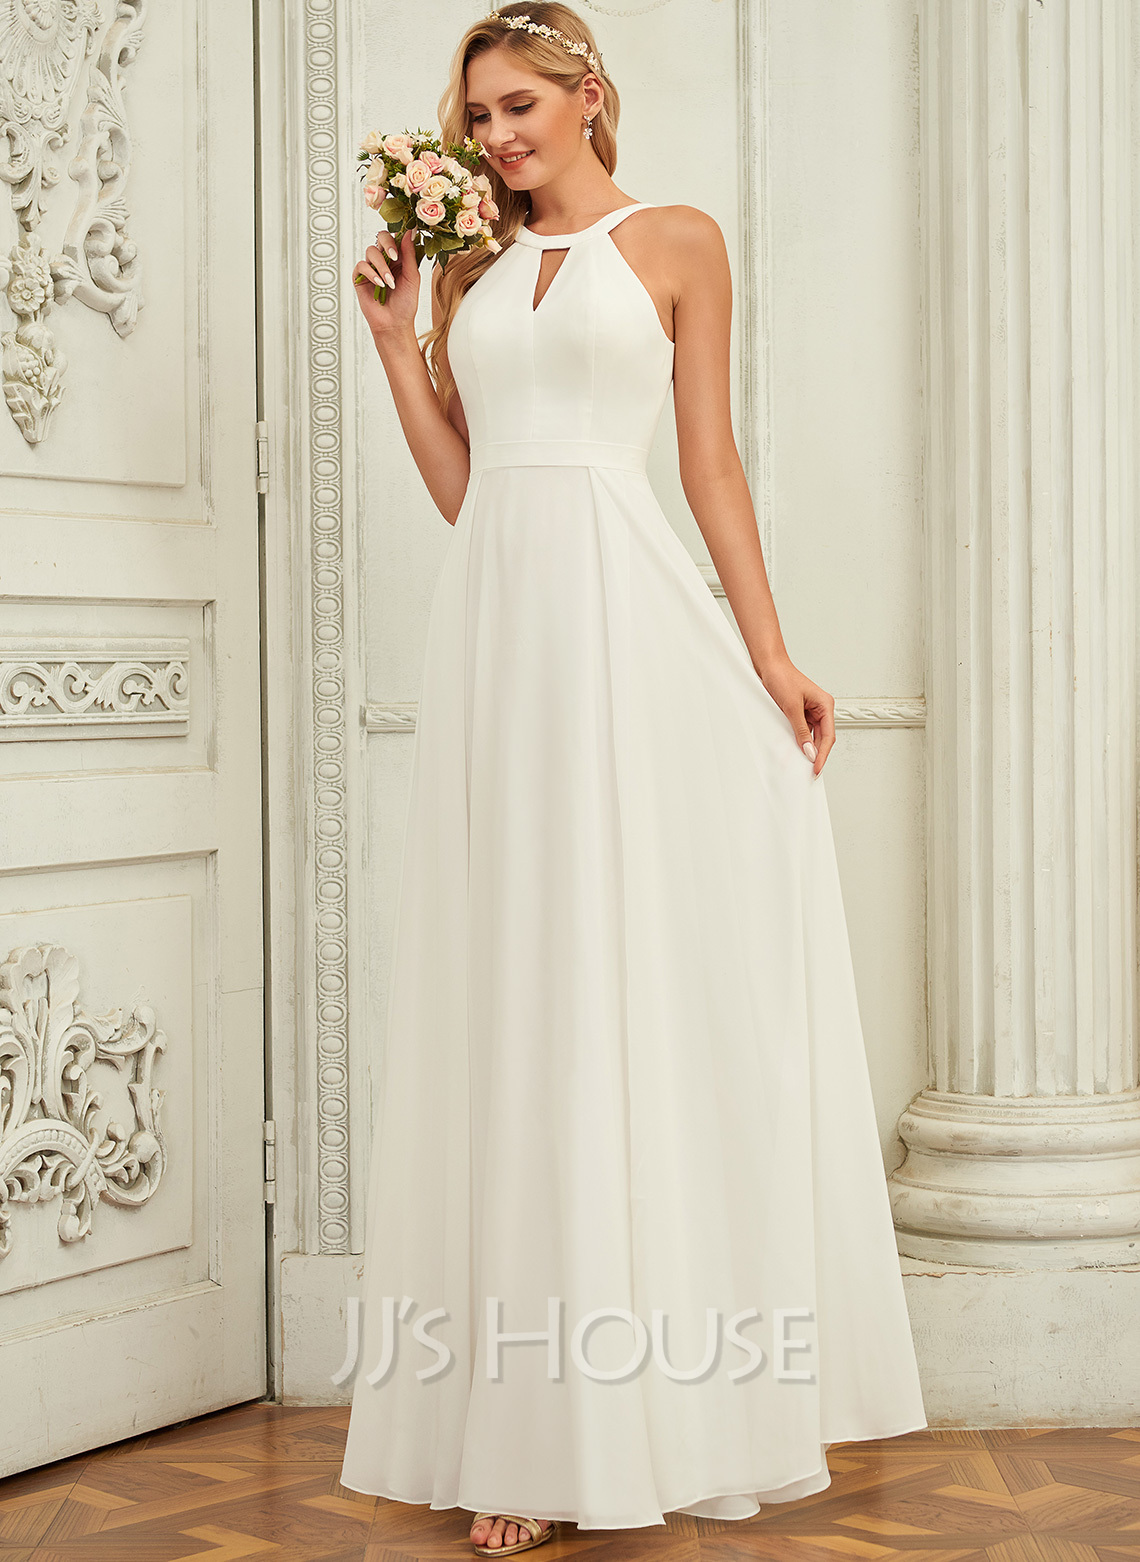 A-Line Scoop Neck Floor-Length Chiffon Wedding Dress